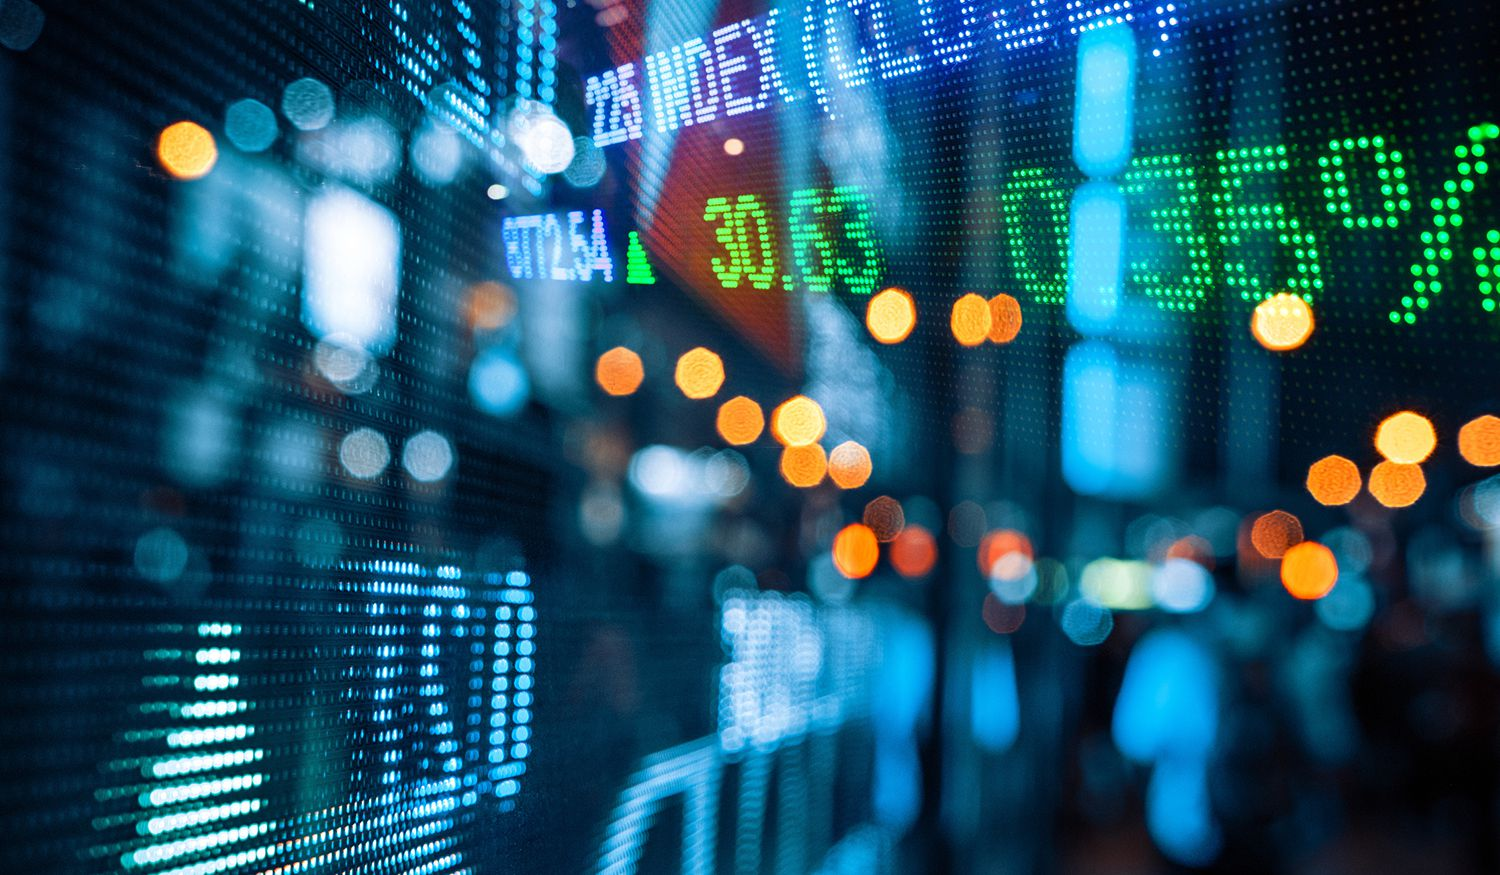 Stock Trading How to Calculate a Stock's Adjusted Closing Price